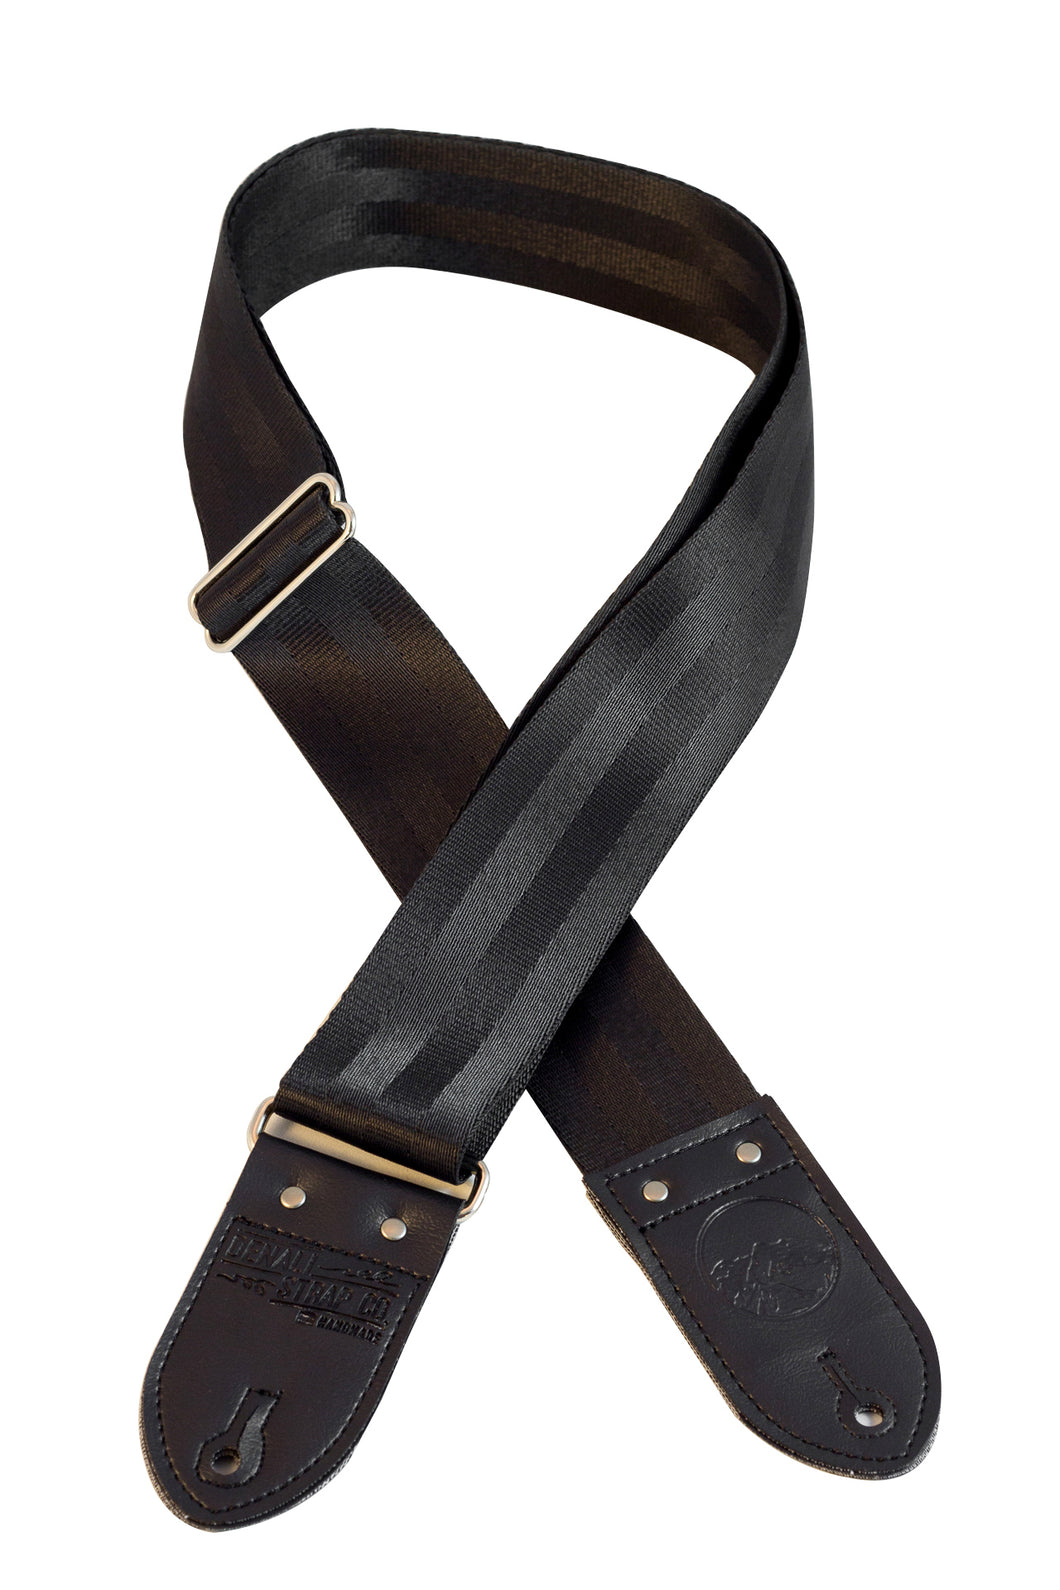 Black Seatbelt Guitar Strap